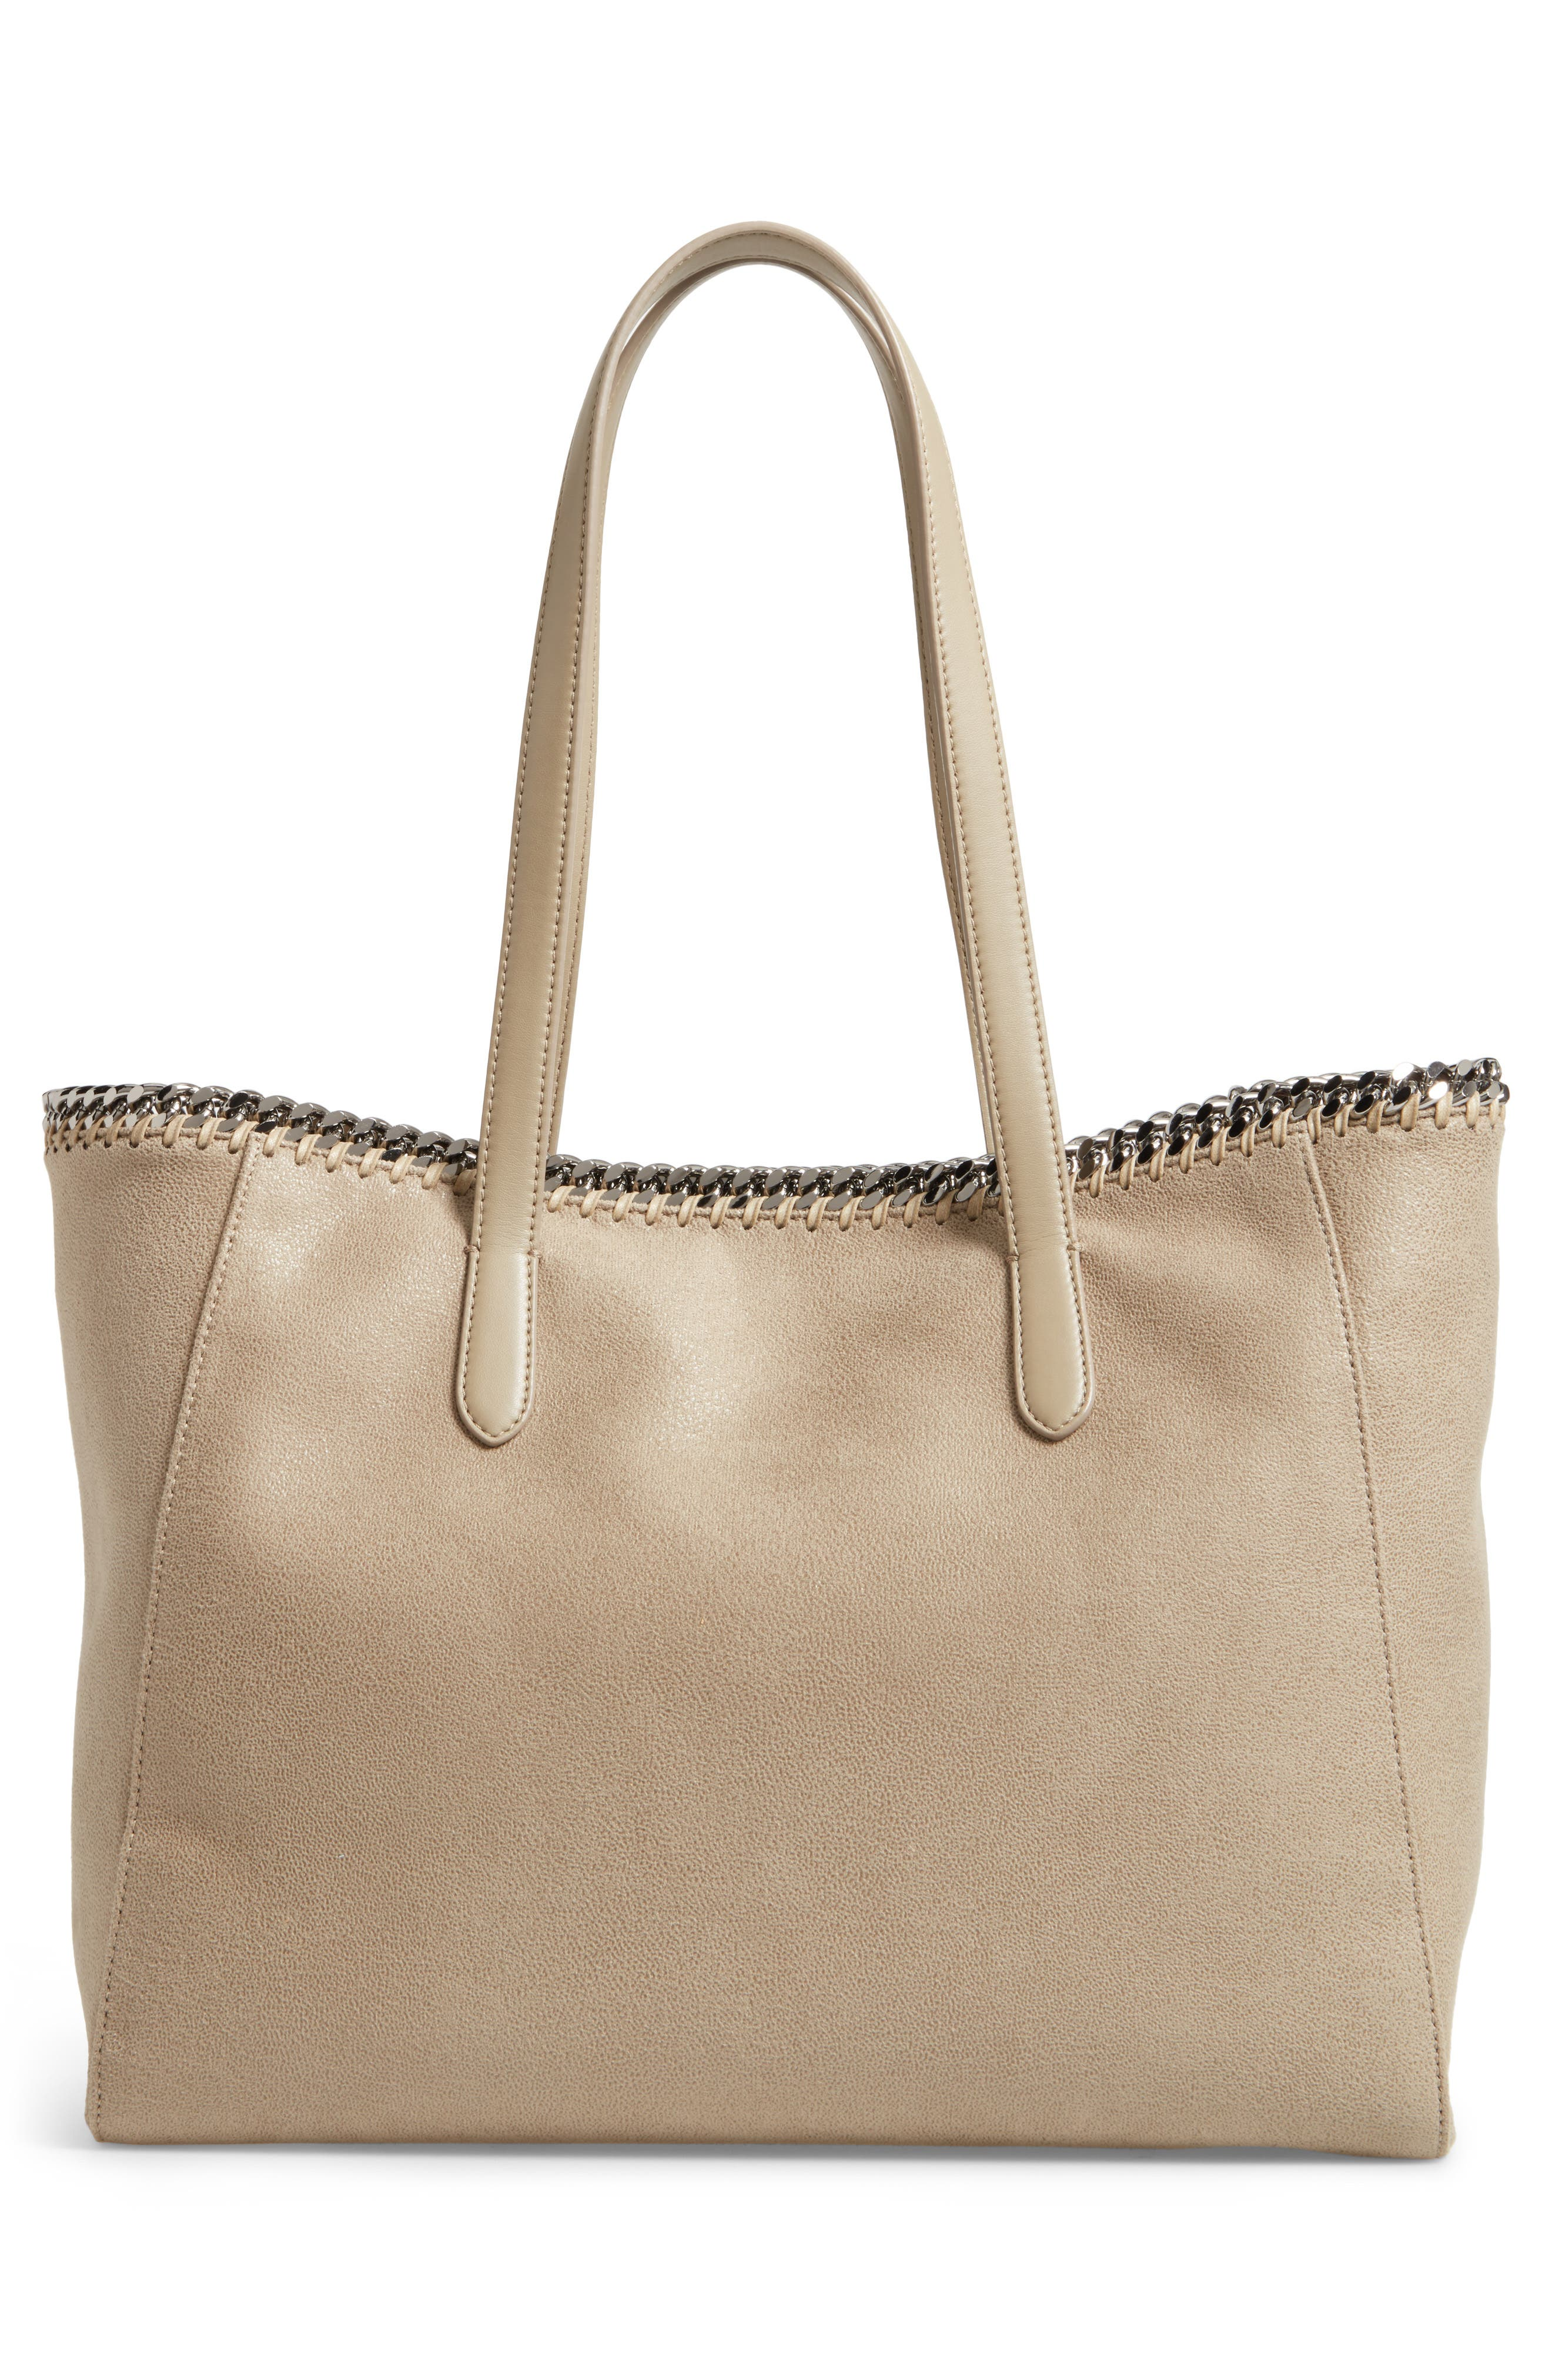 'Falabella - Shaggy Deer' Faux Leather Tote,                             Alternate thumbnail 11, color,